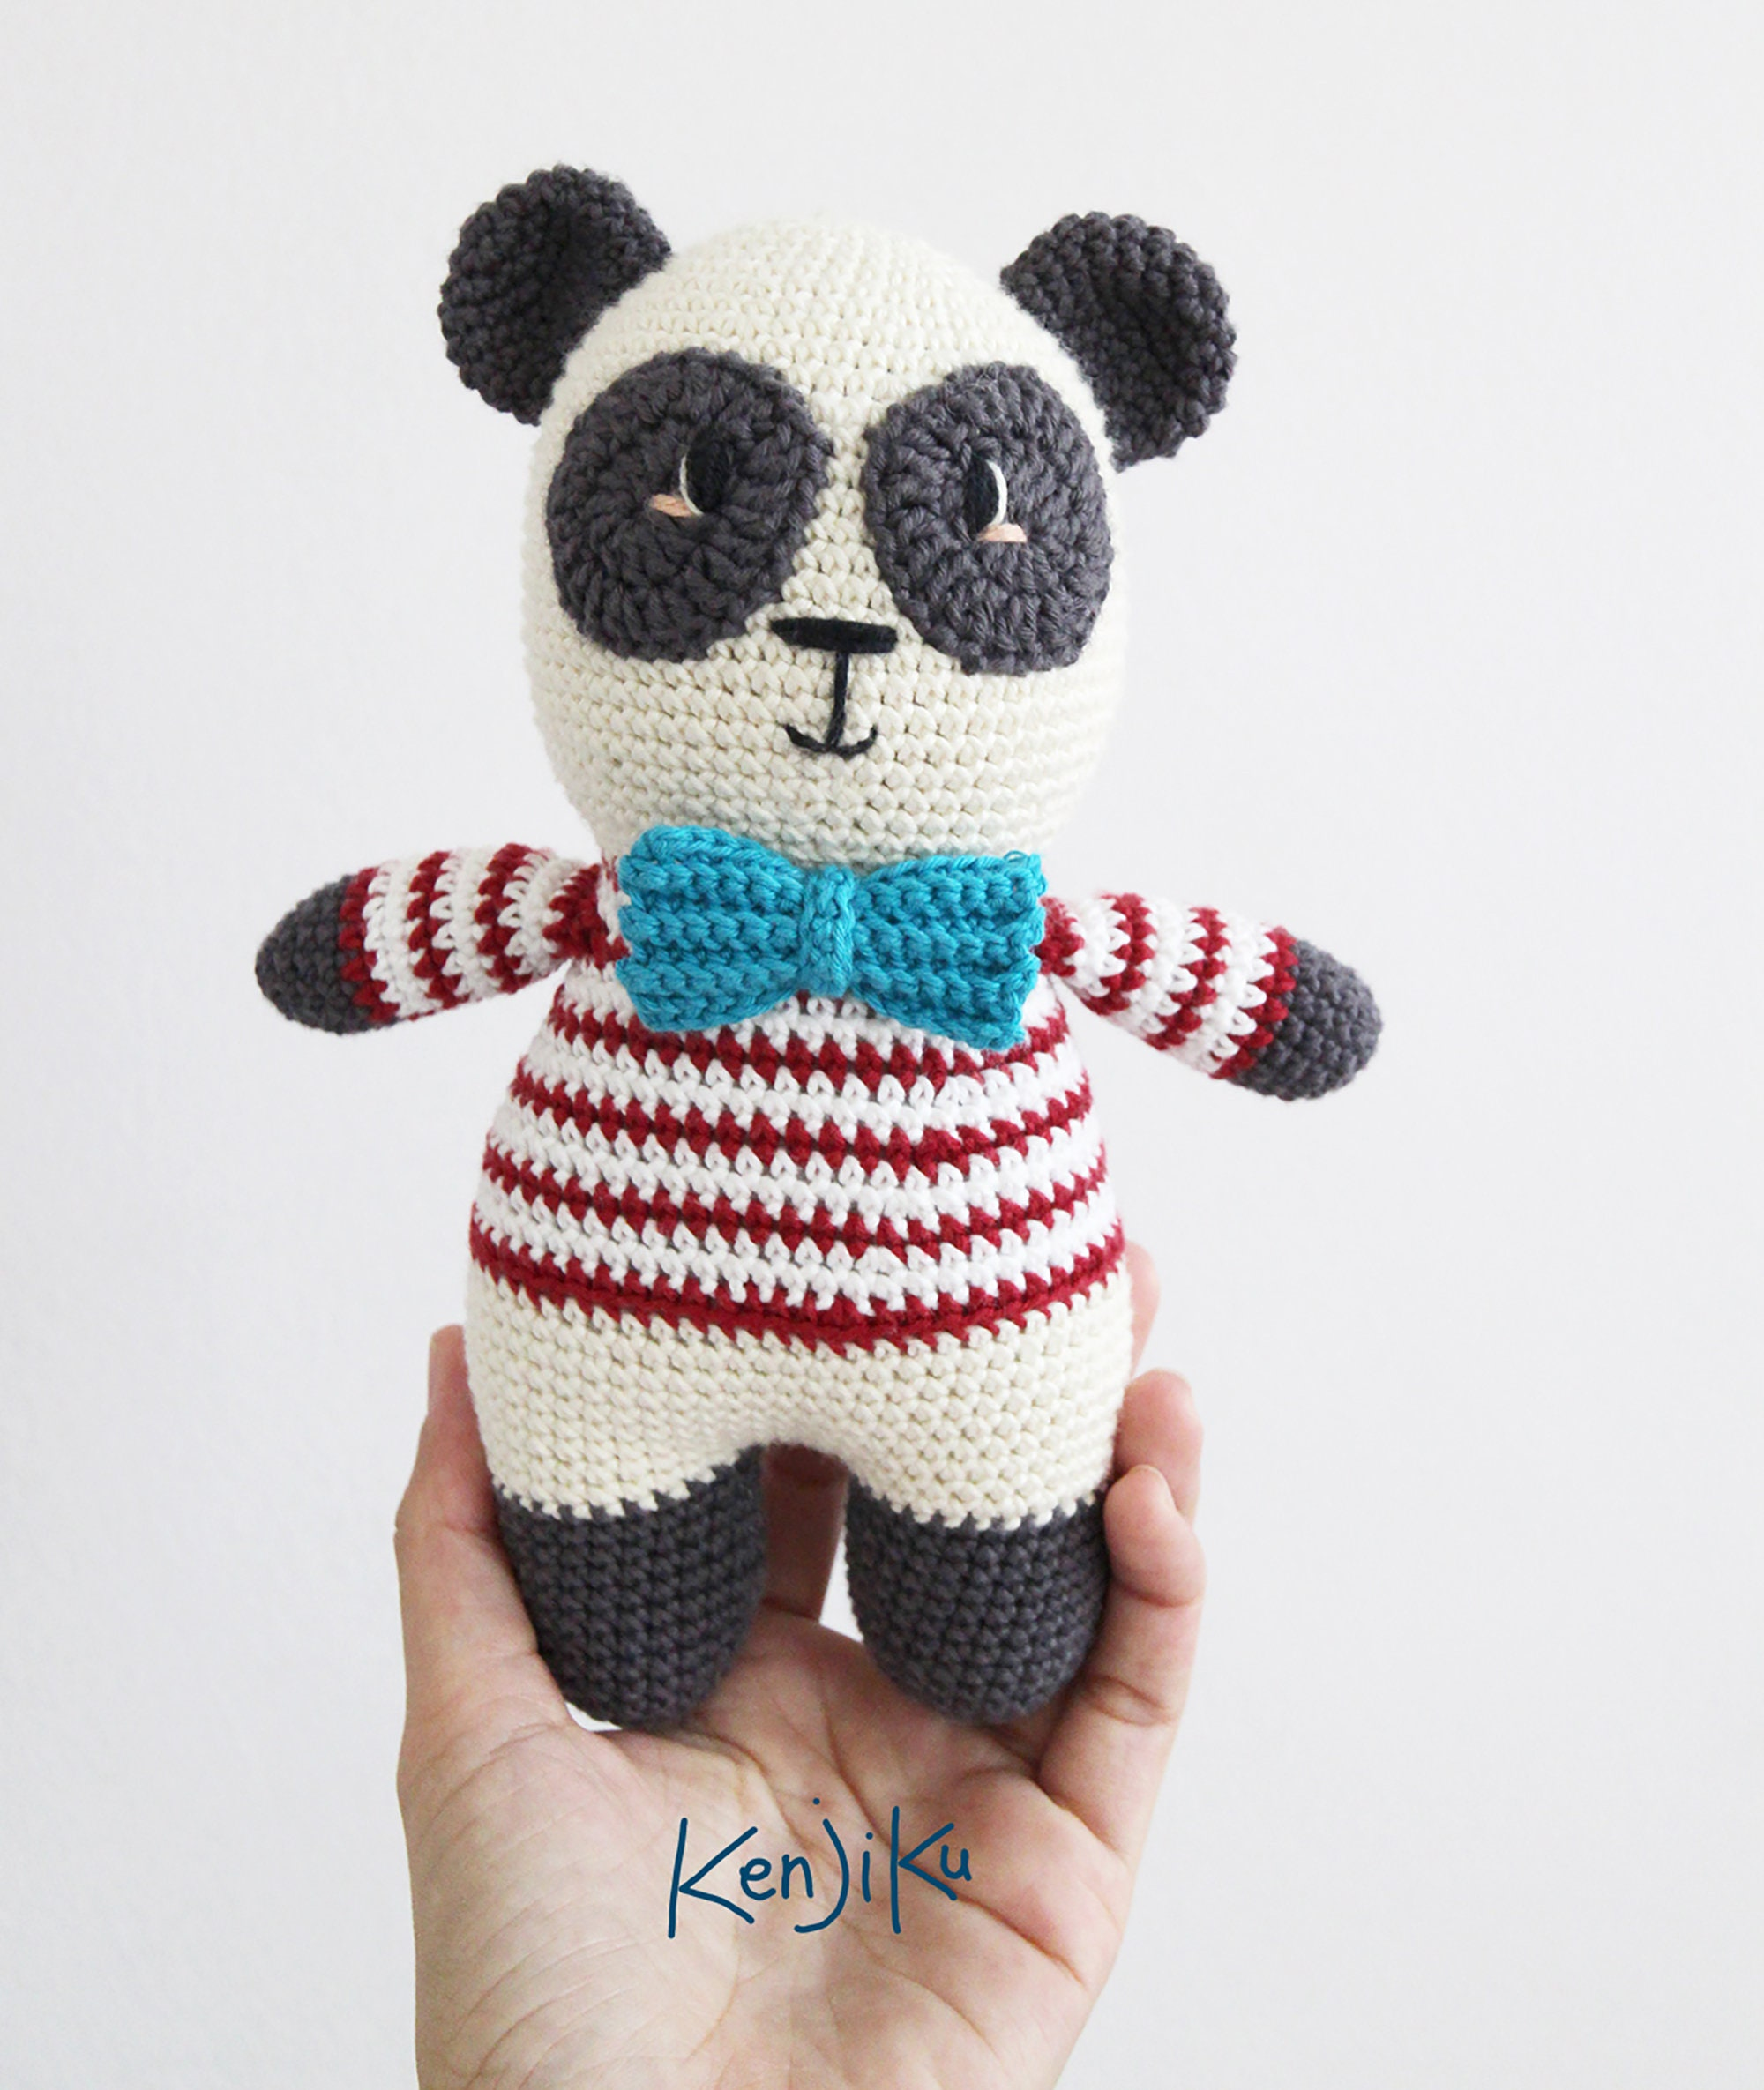 Super Cute Panda Crochet Patterns You Will Love | Crochet panda ... | 2370x2000